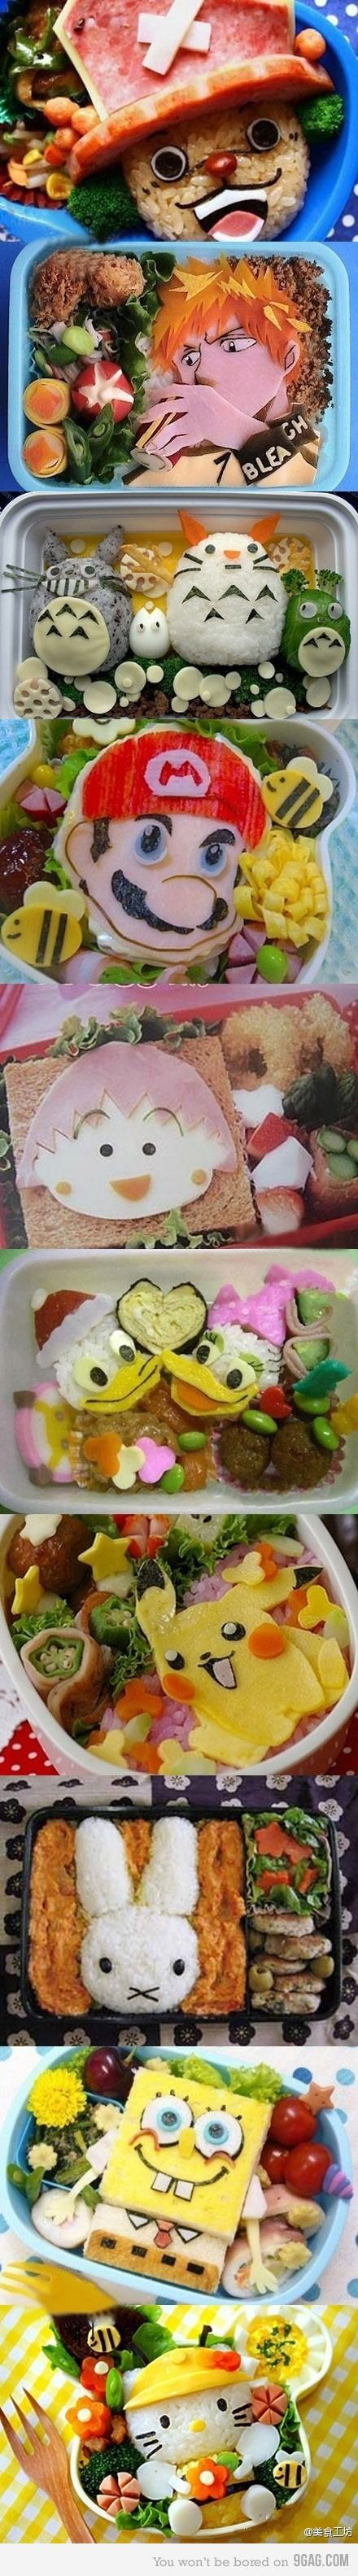 i wish i could make awesome bentos like this!